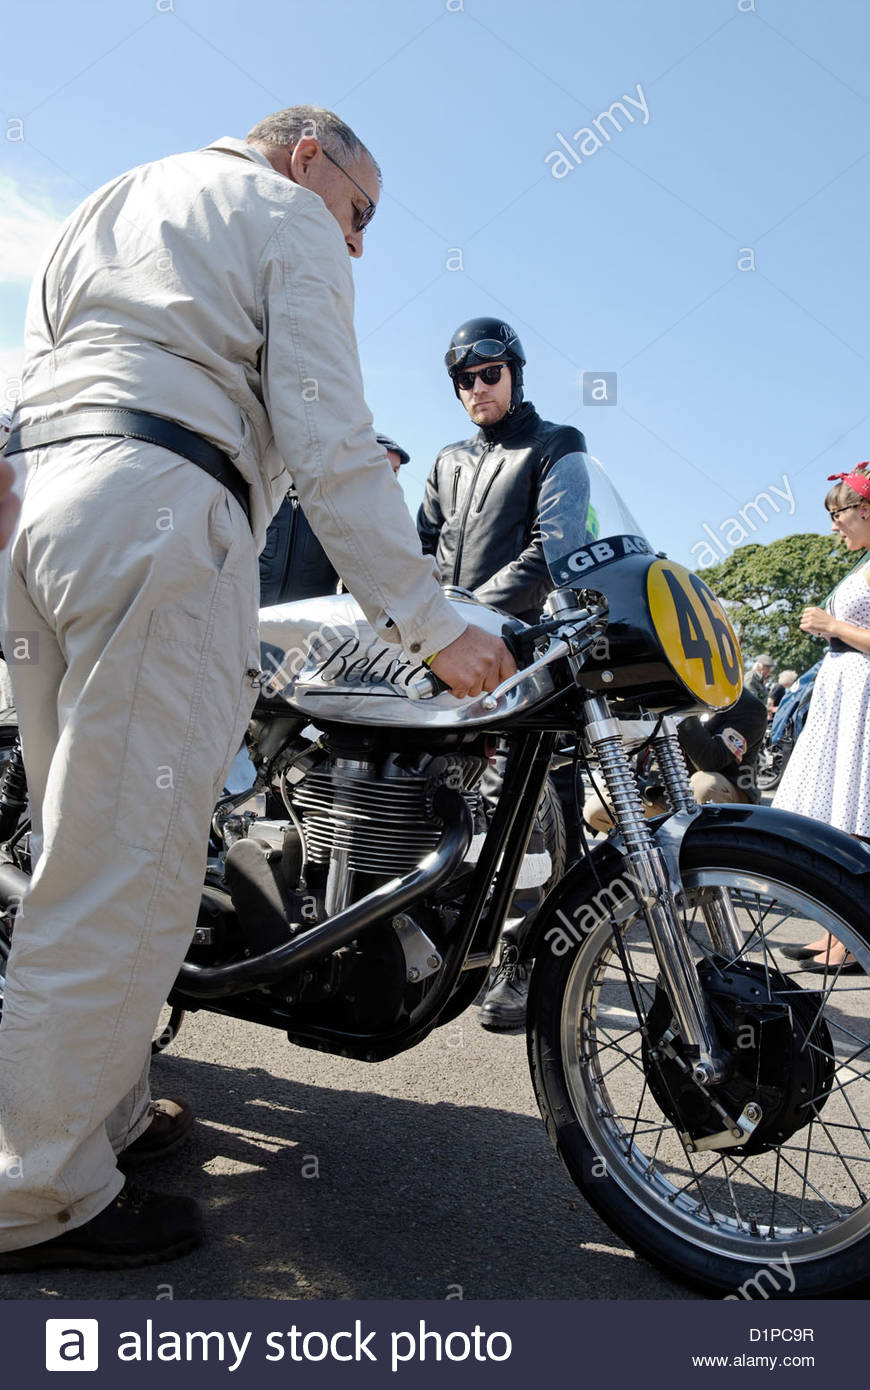 actor Ewan McGregor waiting before the start of the Barry Sheene Memorial Trophy Motorcycle Race to ride a Norton - Stock Image